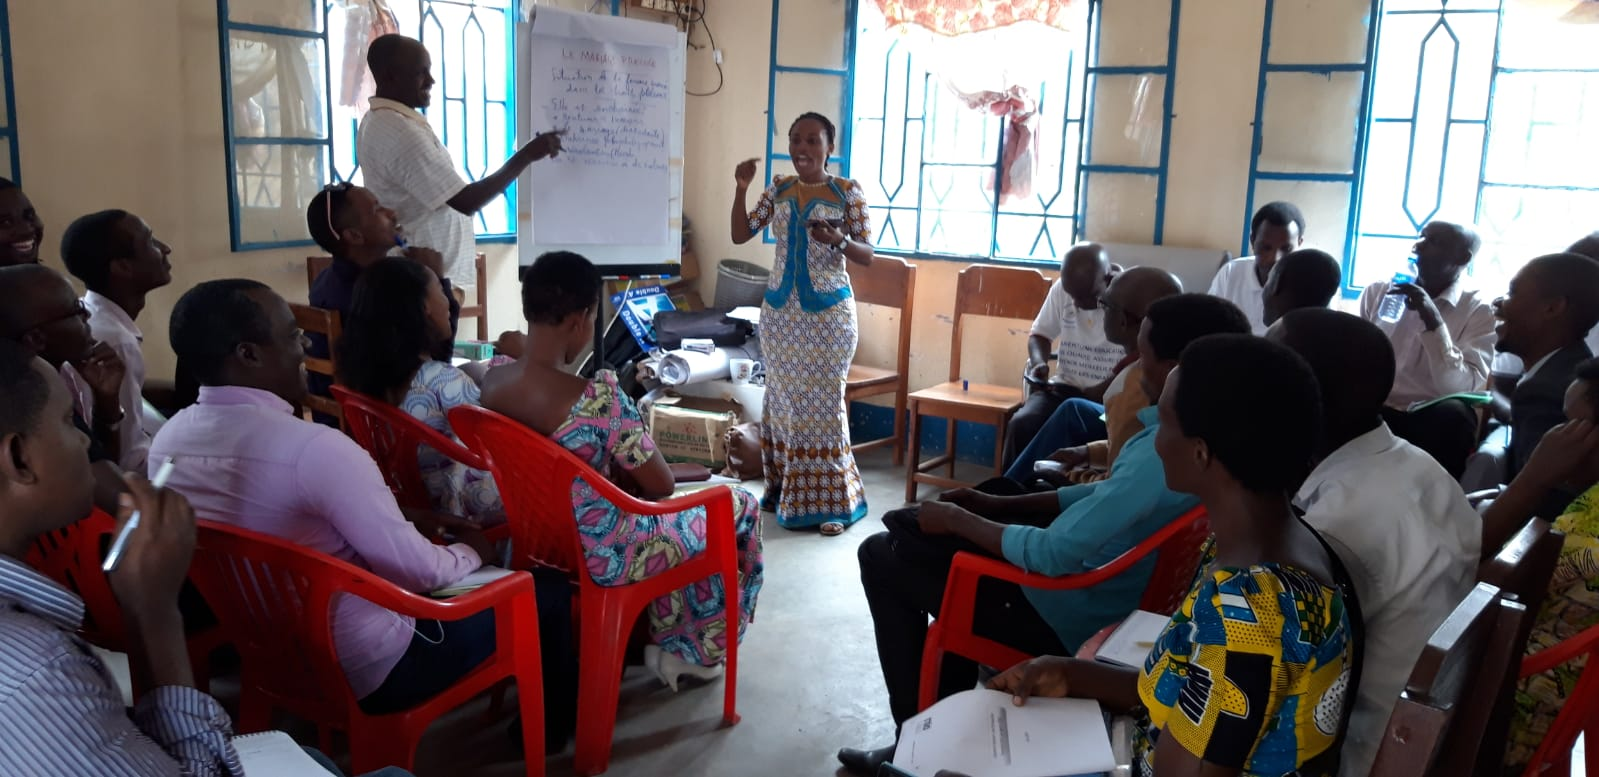 Prior to the launch of Street Child's 'Safer Schools' Programme, staff training was led by EMI's Gender, Rights and Inclusion Team Leader, Sylvie, on topics such as early and forced marriage and gender equality.